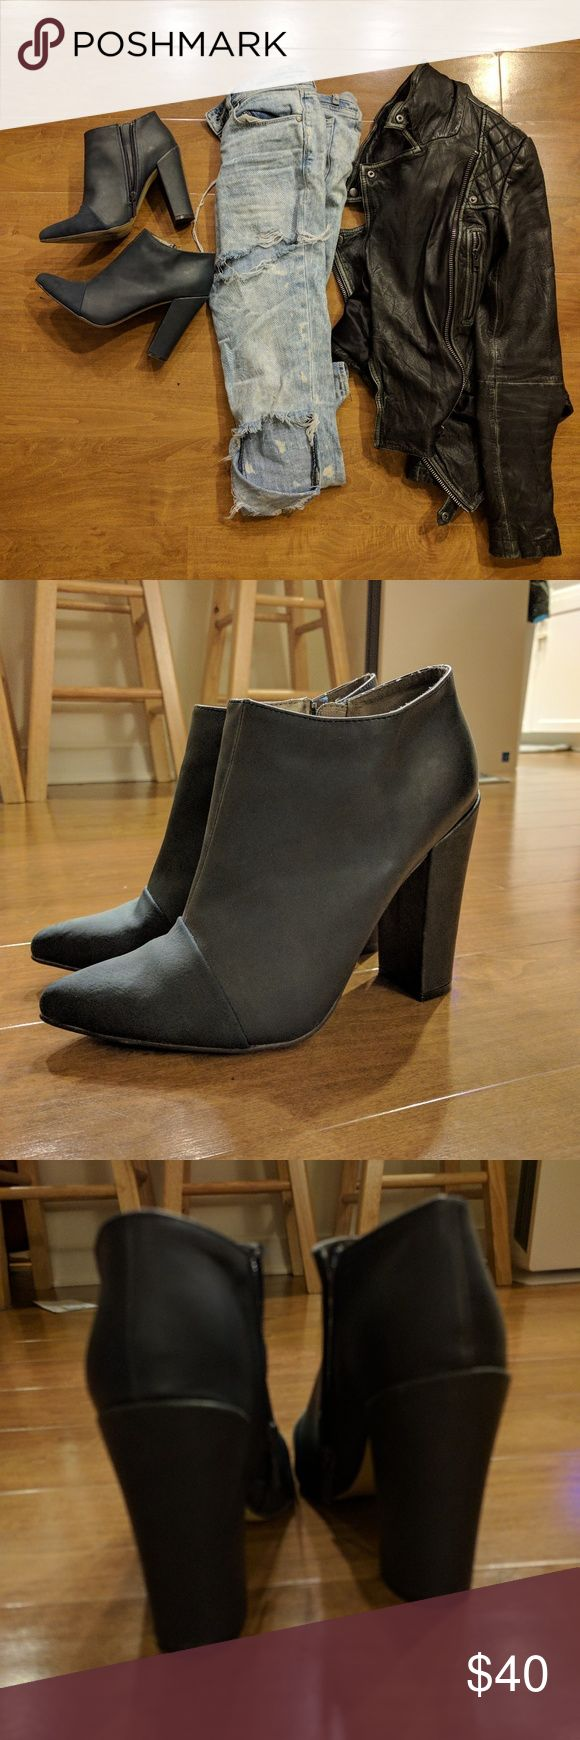 Size 7 navy ankle boots michael antonio Cute ankle boots only worn once, so like new condition.chunky heel Michael Antonio Shoes Ankle Boots & Booties